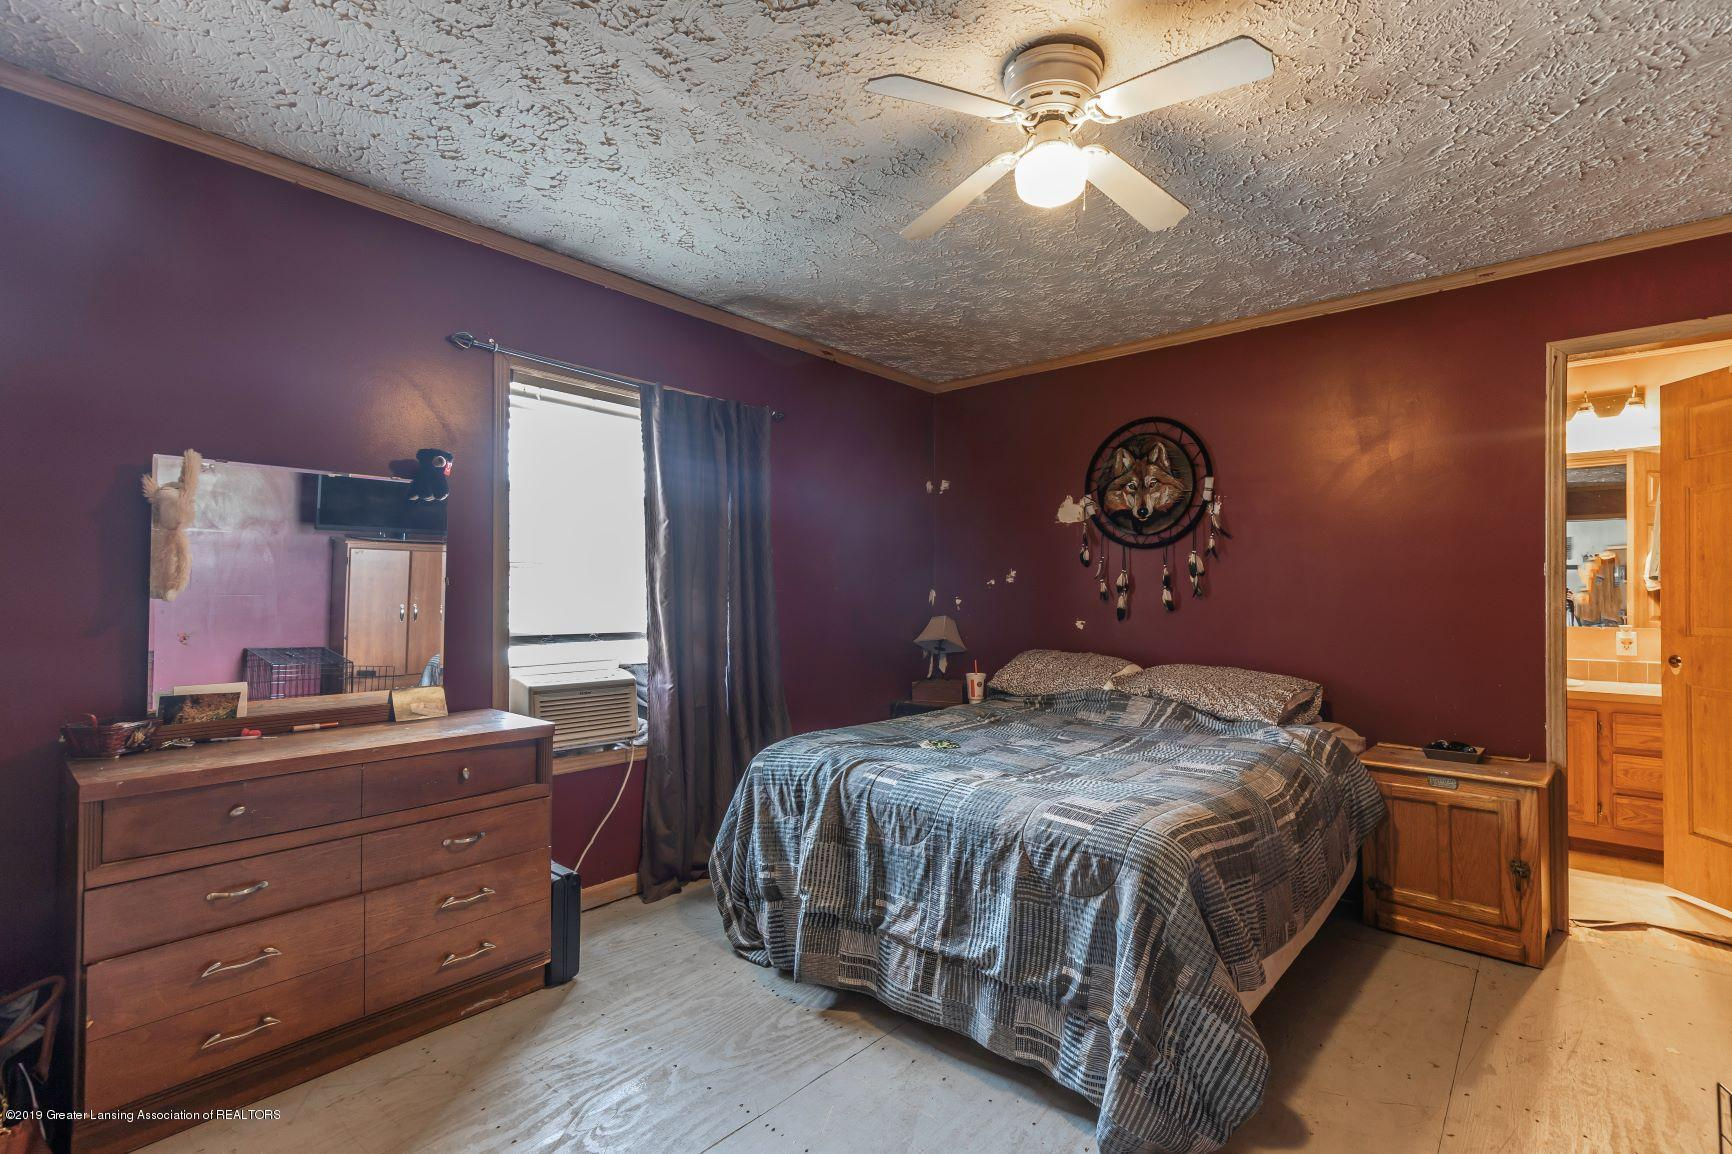 264 S College Rd - collegebed33 - 25